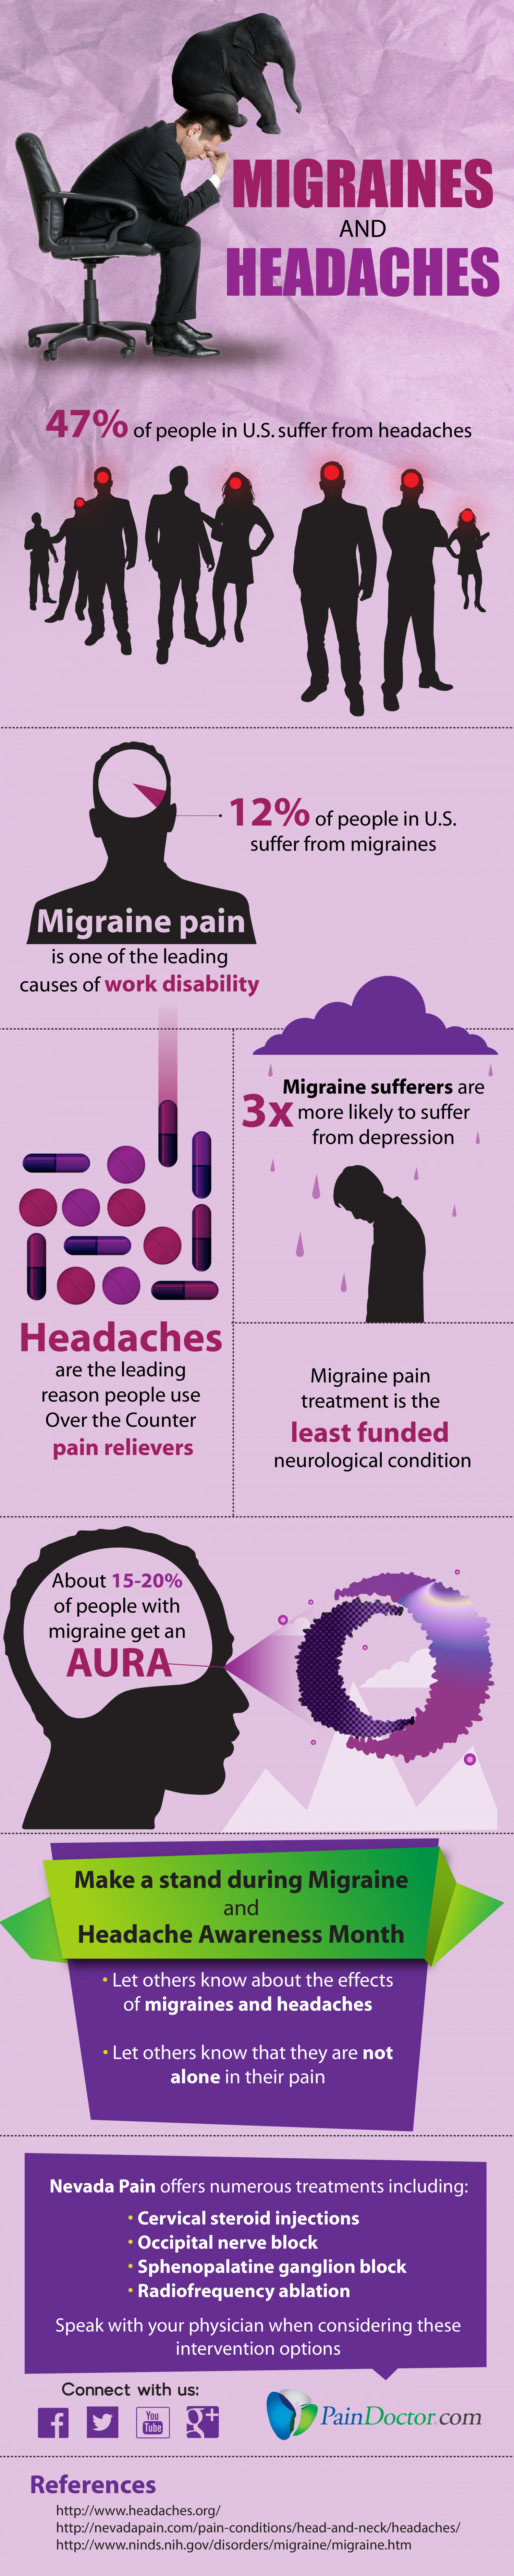 Migraines and Headaches Infographic